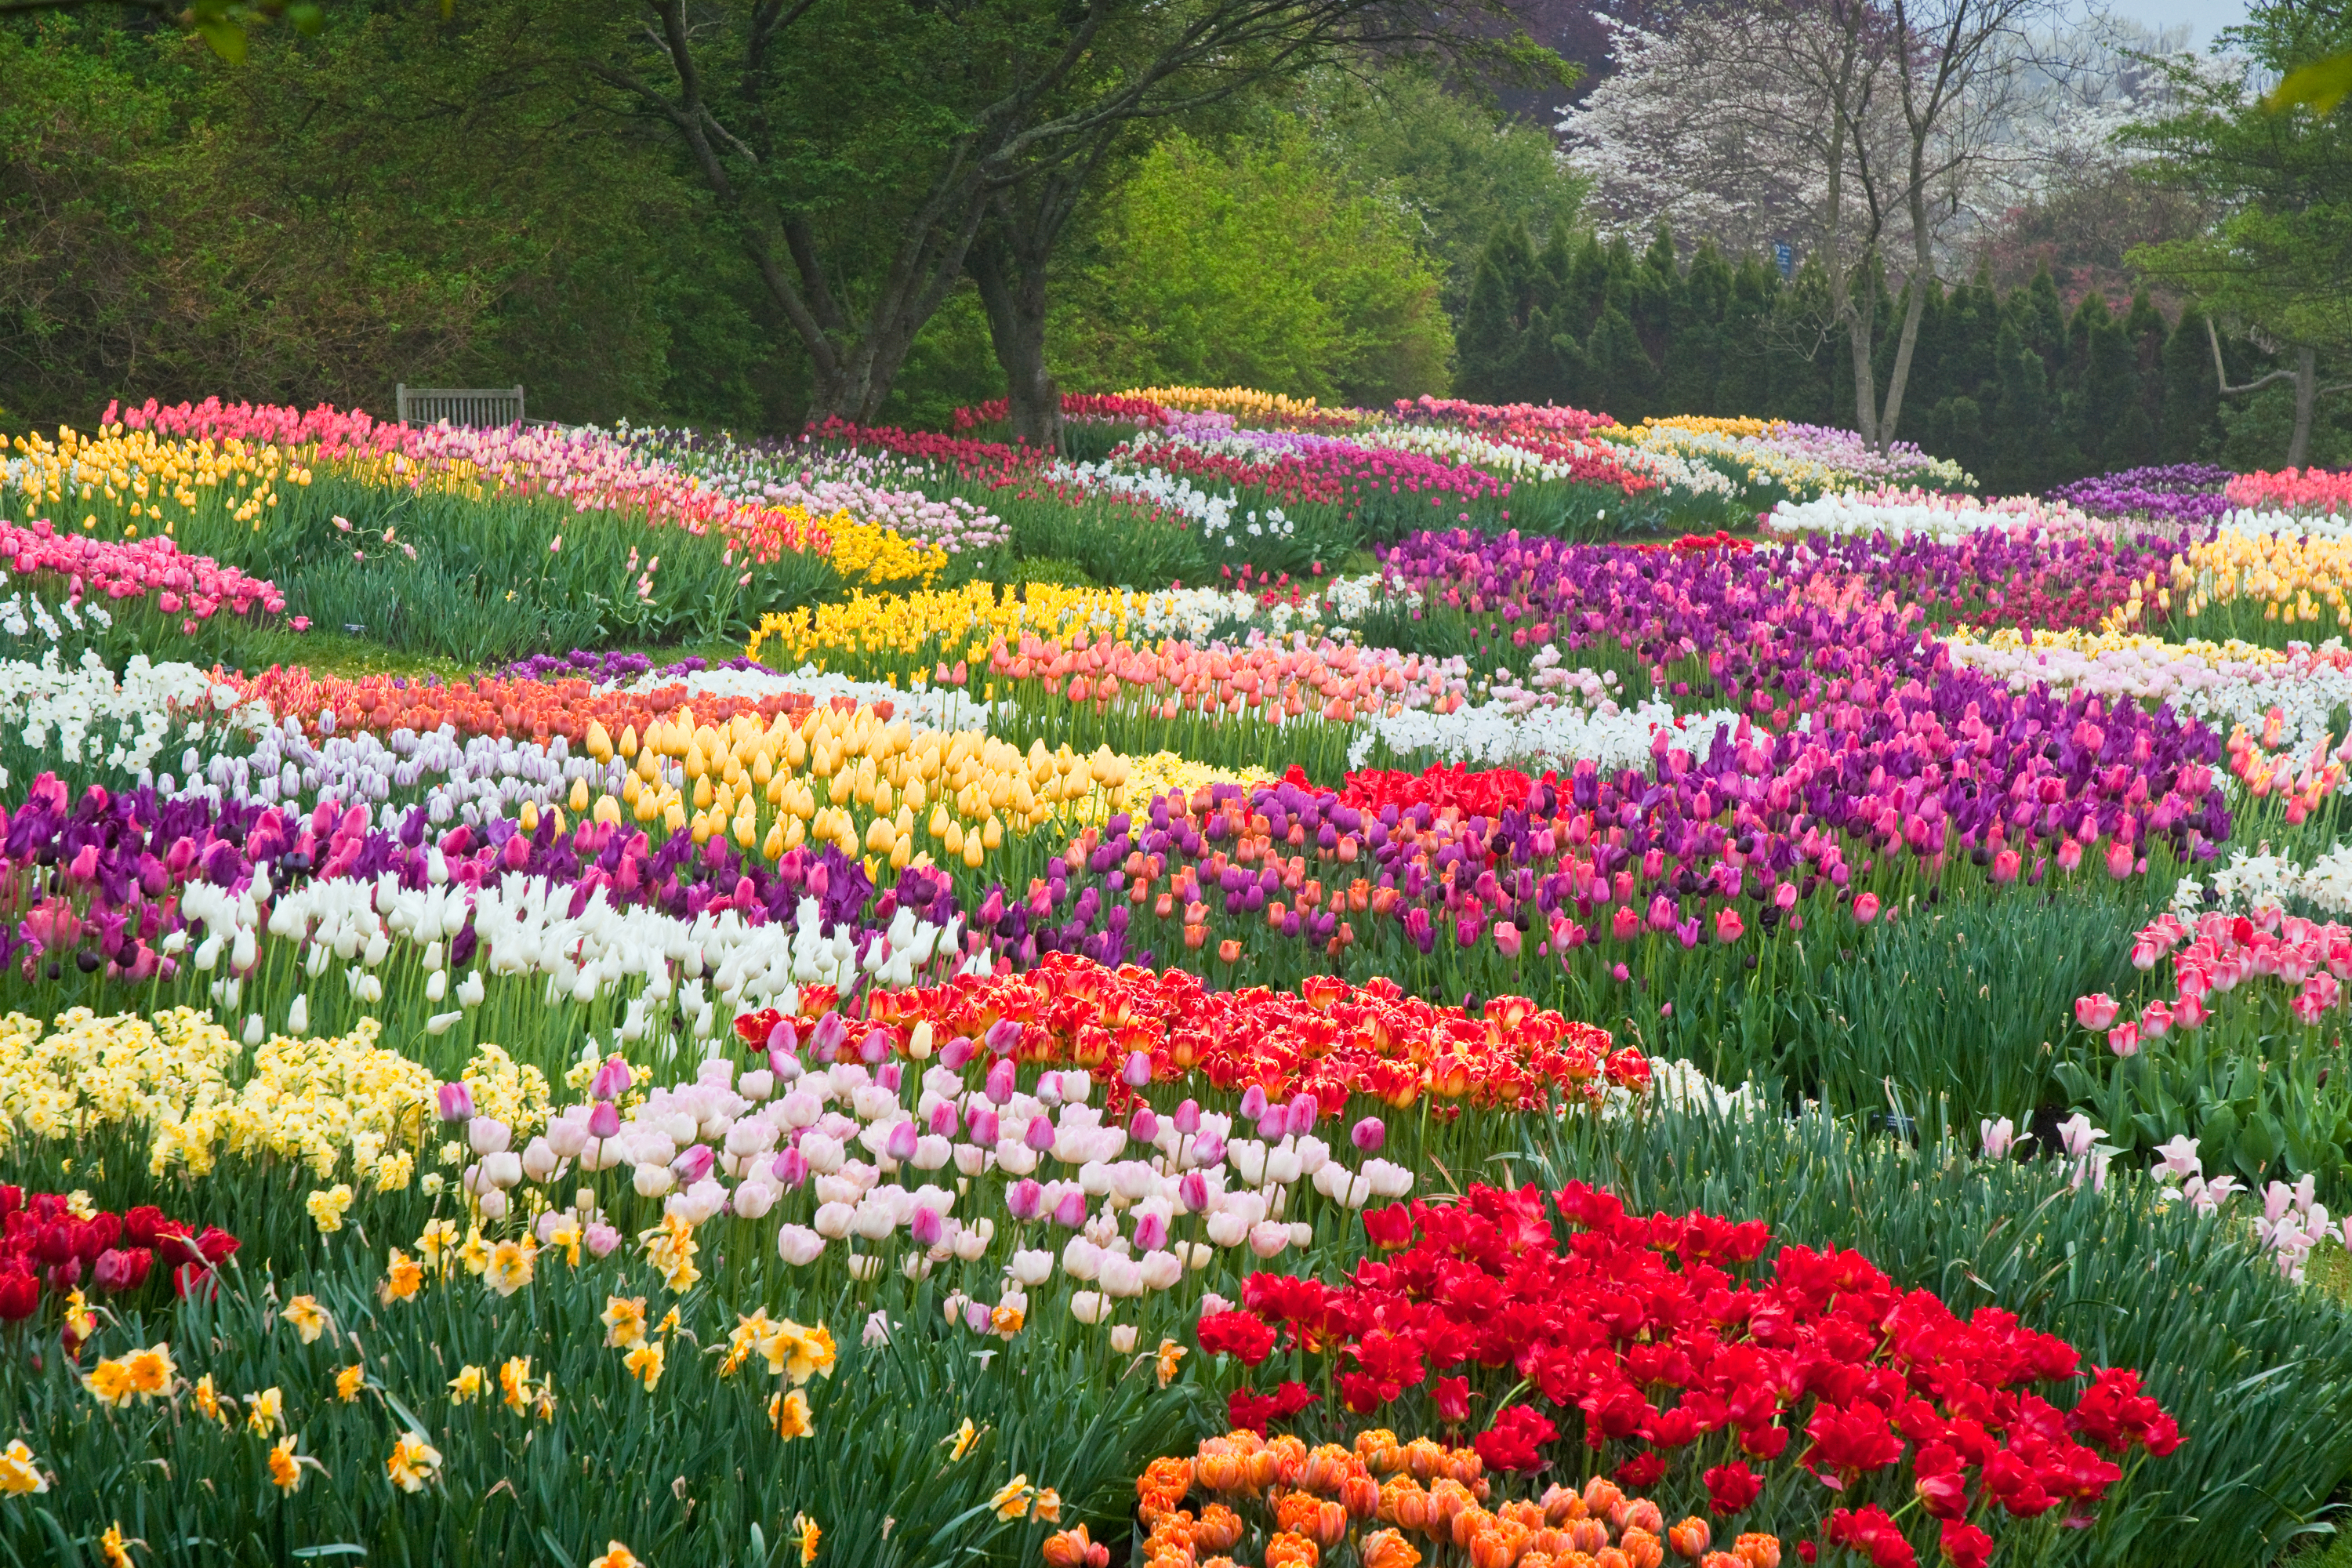 Tulips In The Park Hd Wallpaper Background Image